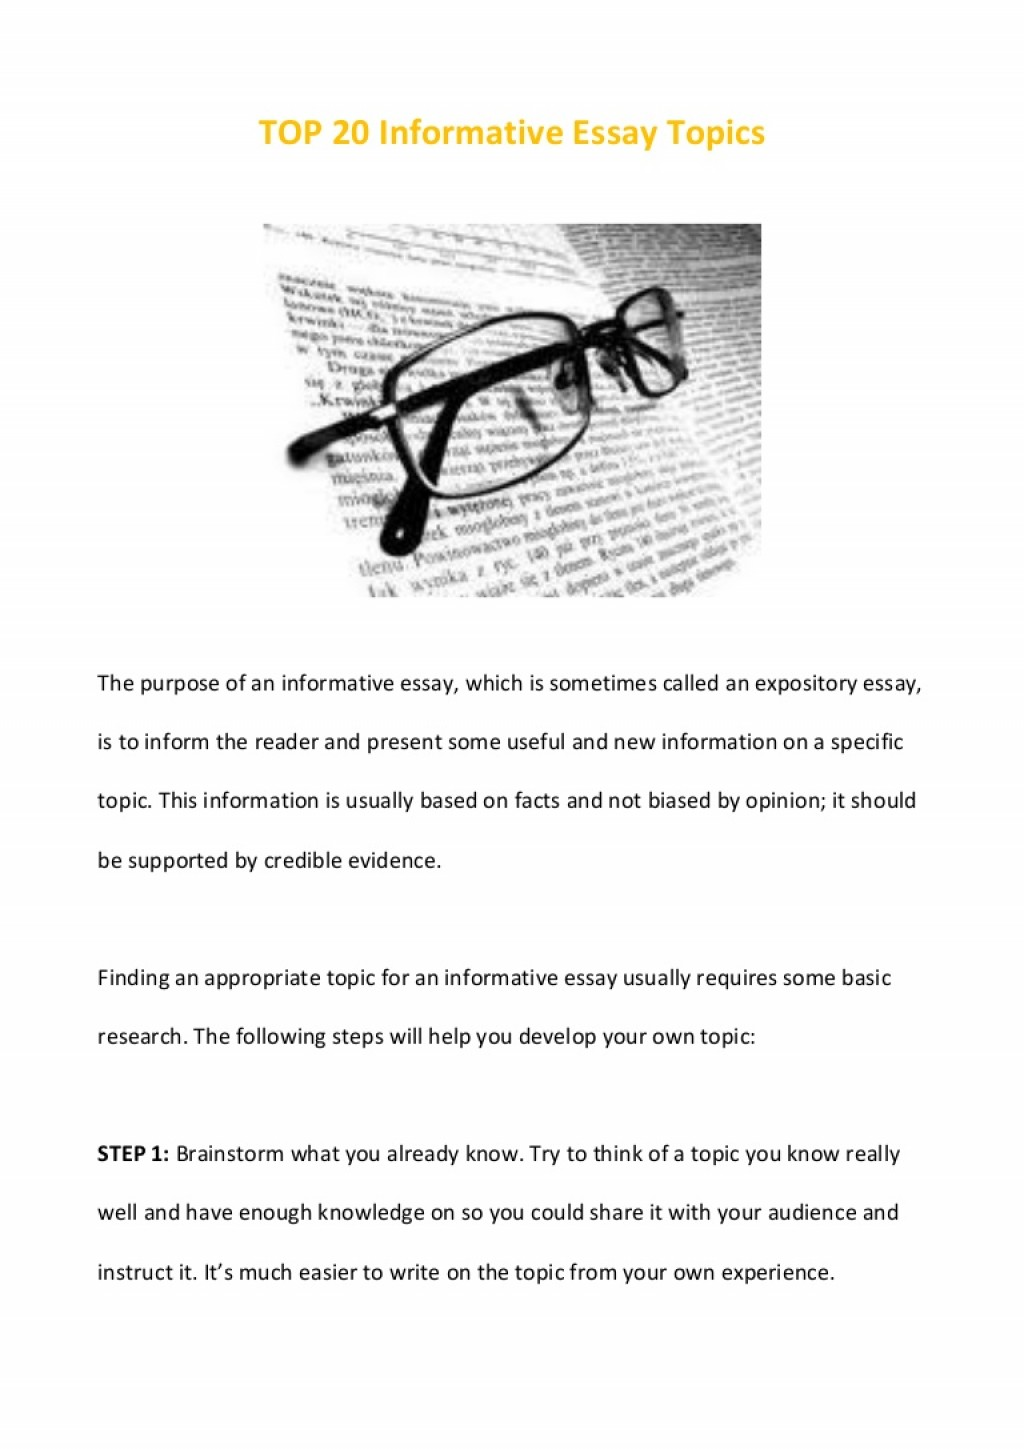 008 Essay Example Informative Ideas Top20informativeessaytopics Phpapp02 Thumbnail Wondrous Prompts Writing Topics 4th Grade Expository Middle School Large